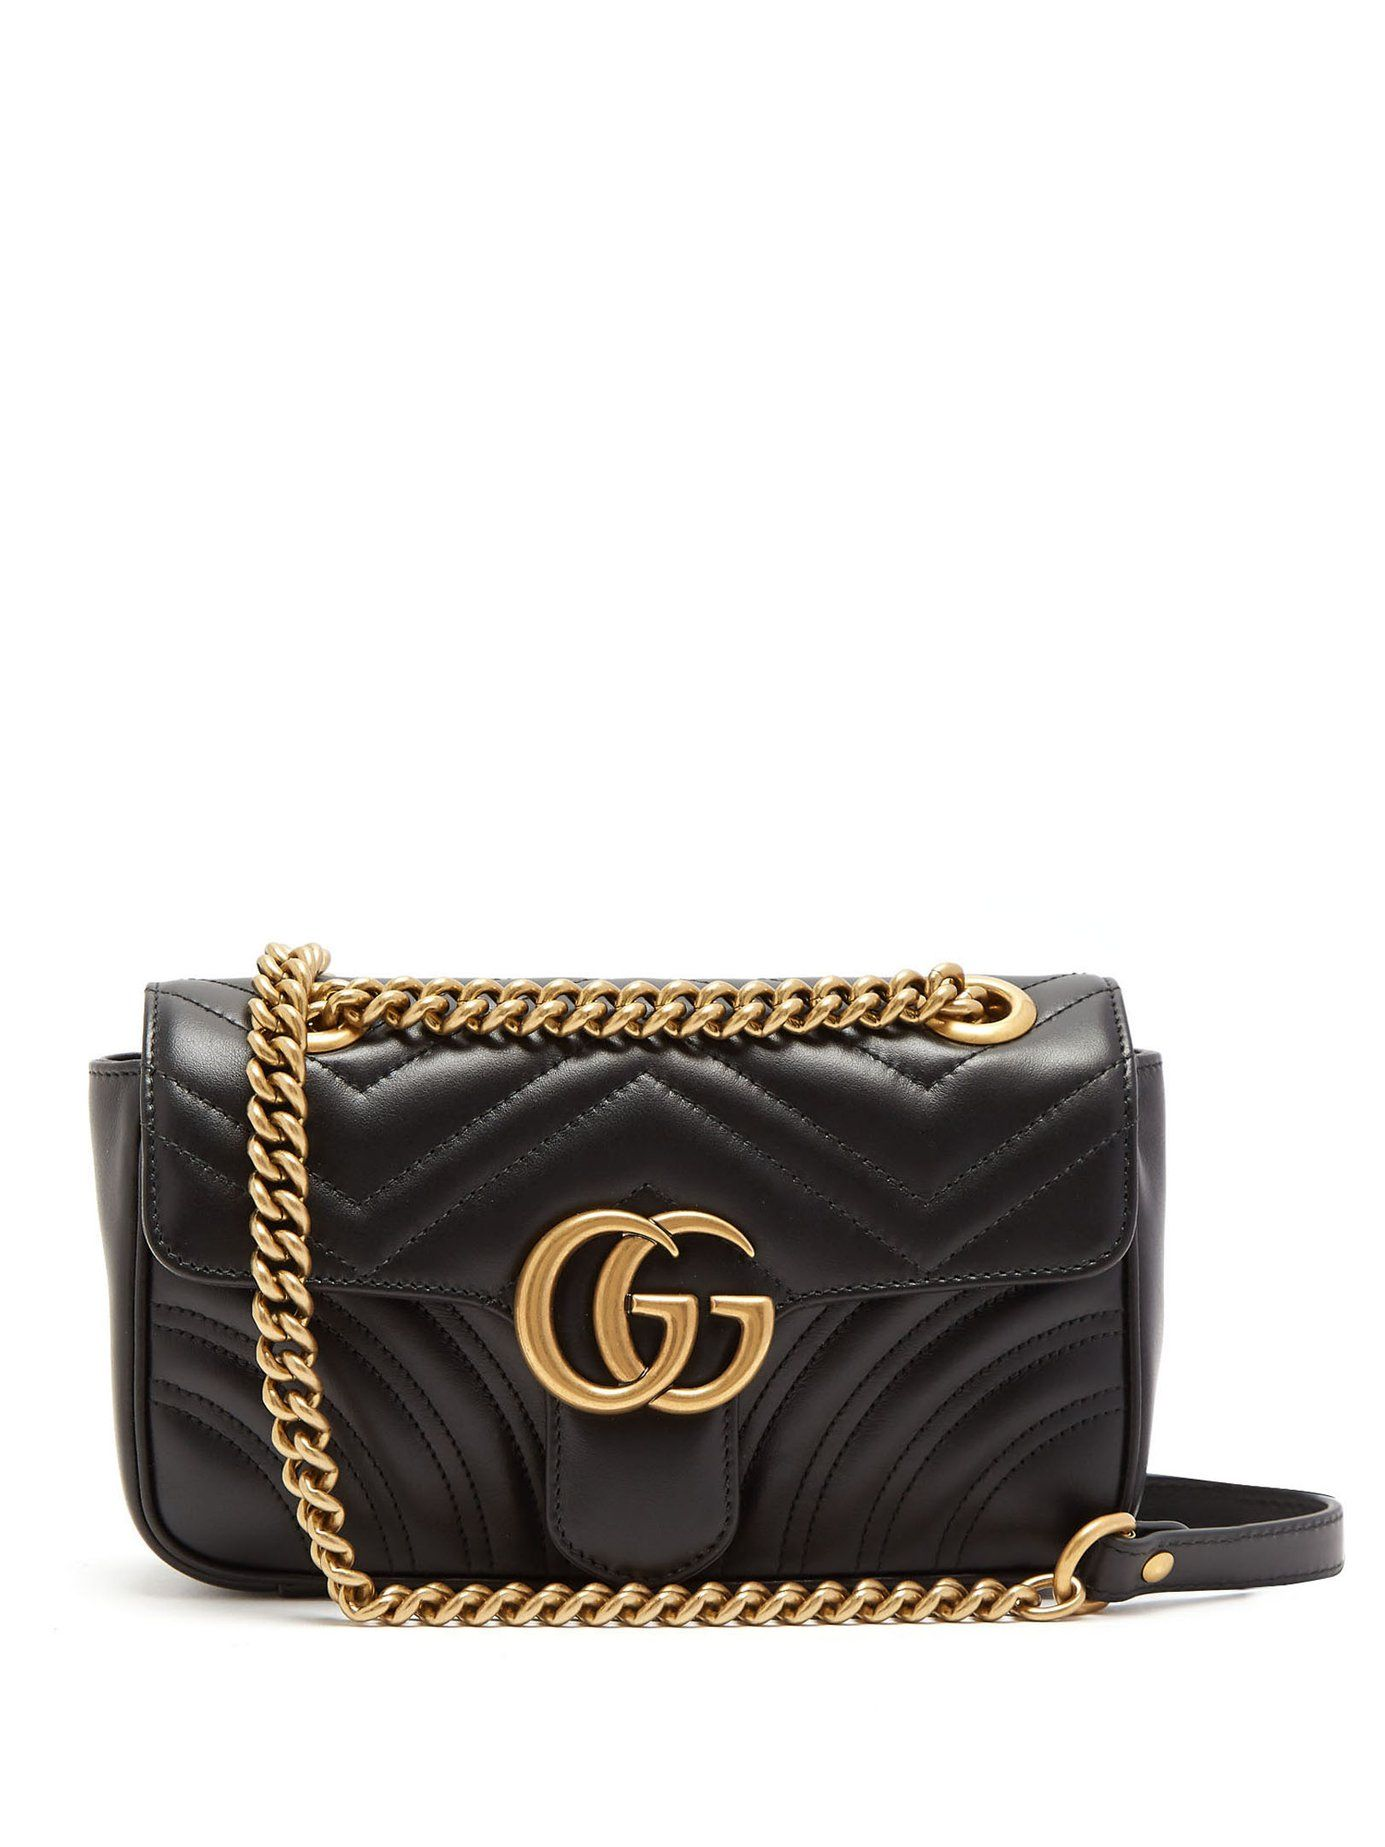 c753c0473b2 GG Marmont mini quilted-leather cross-body bag